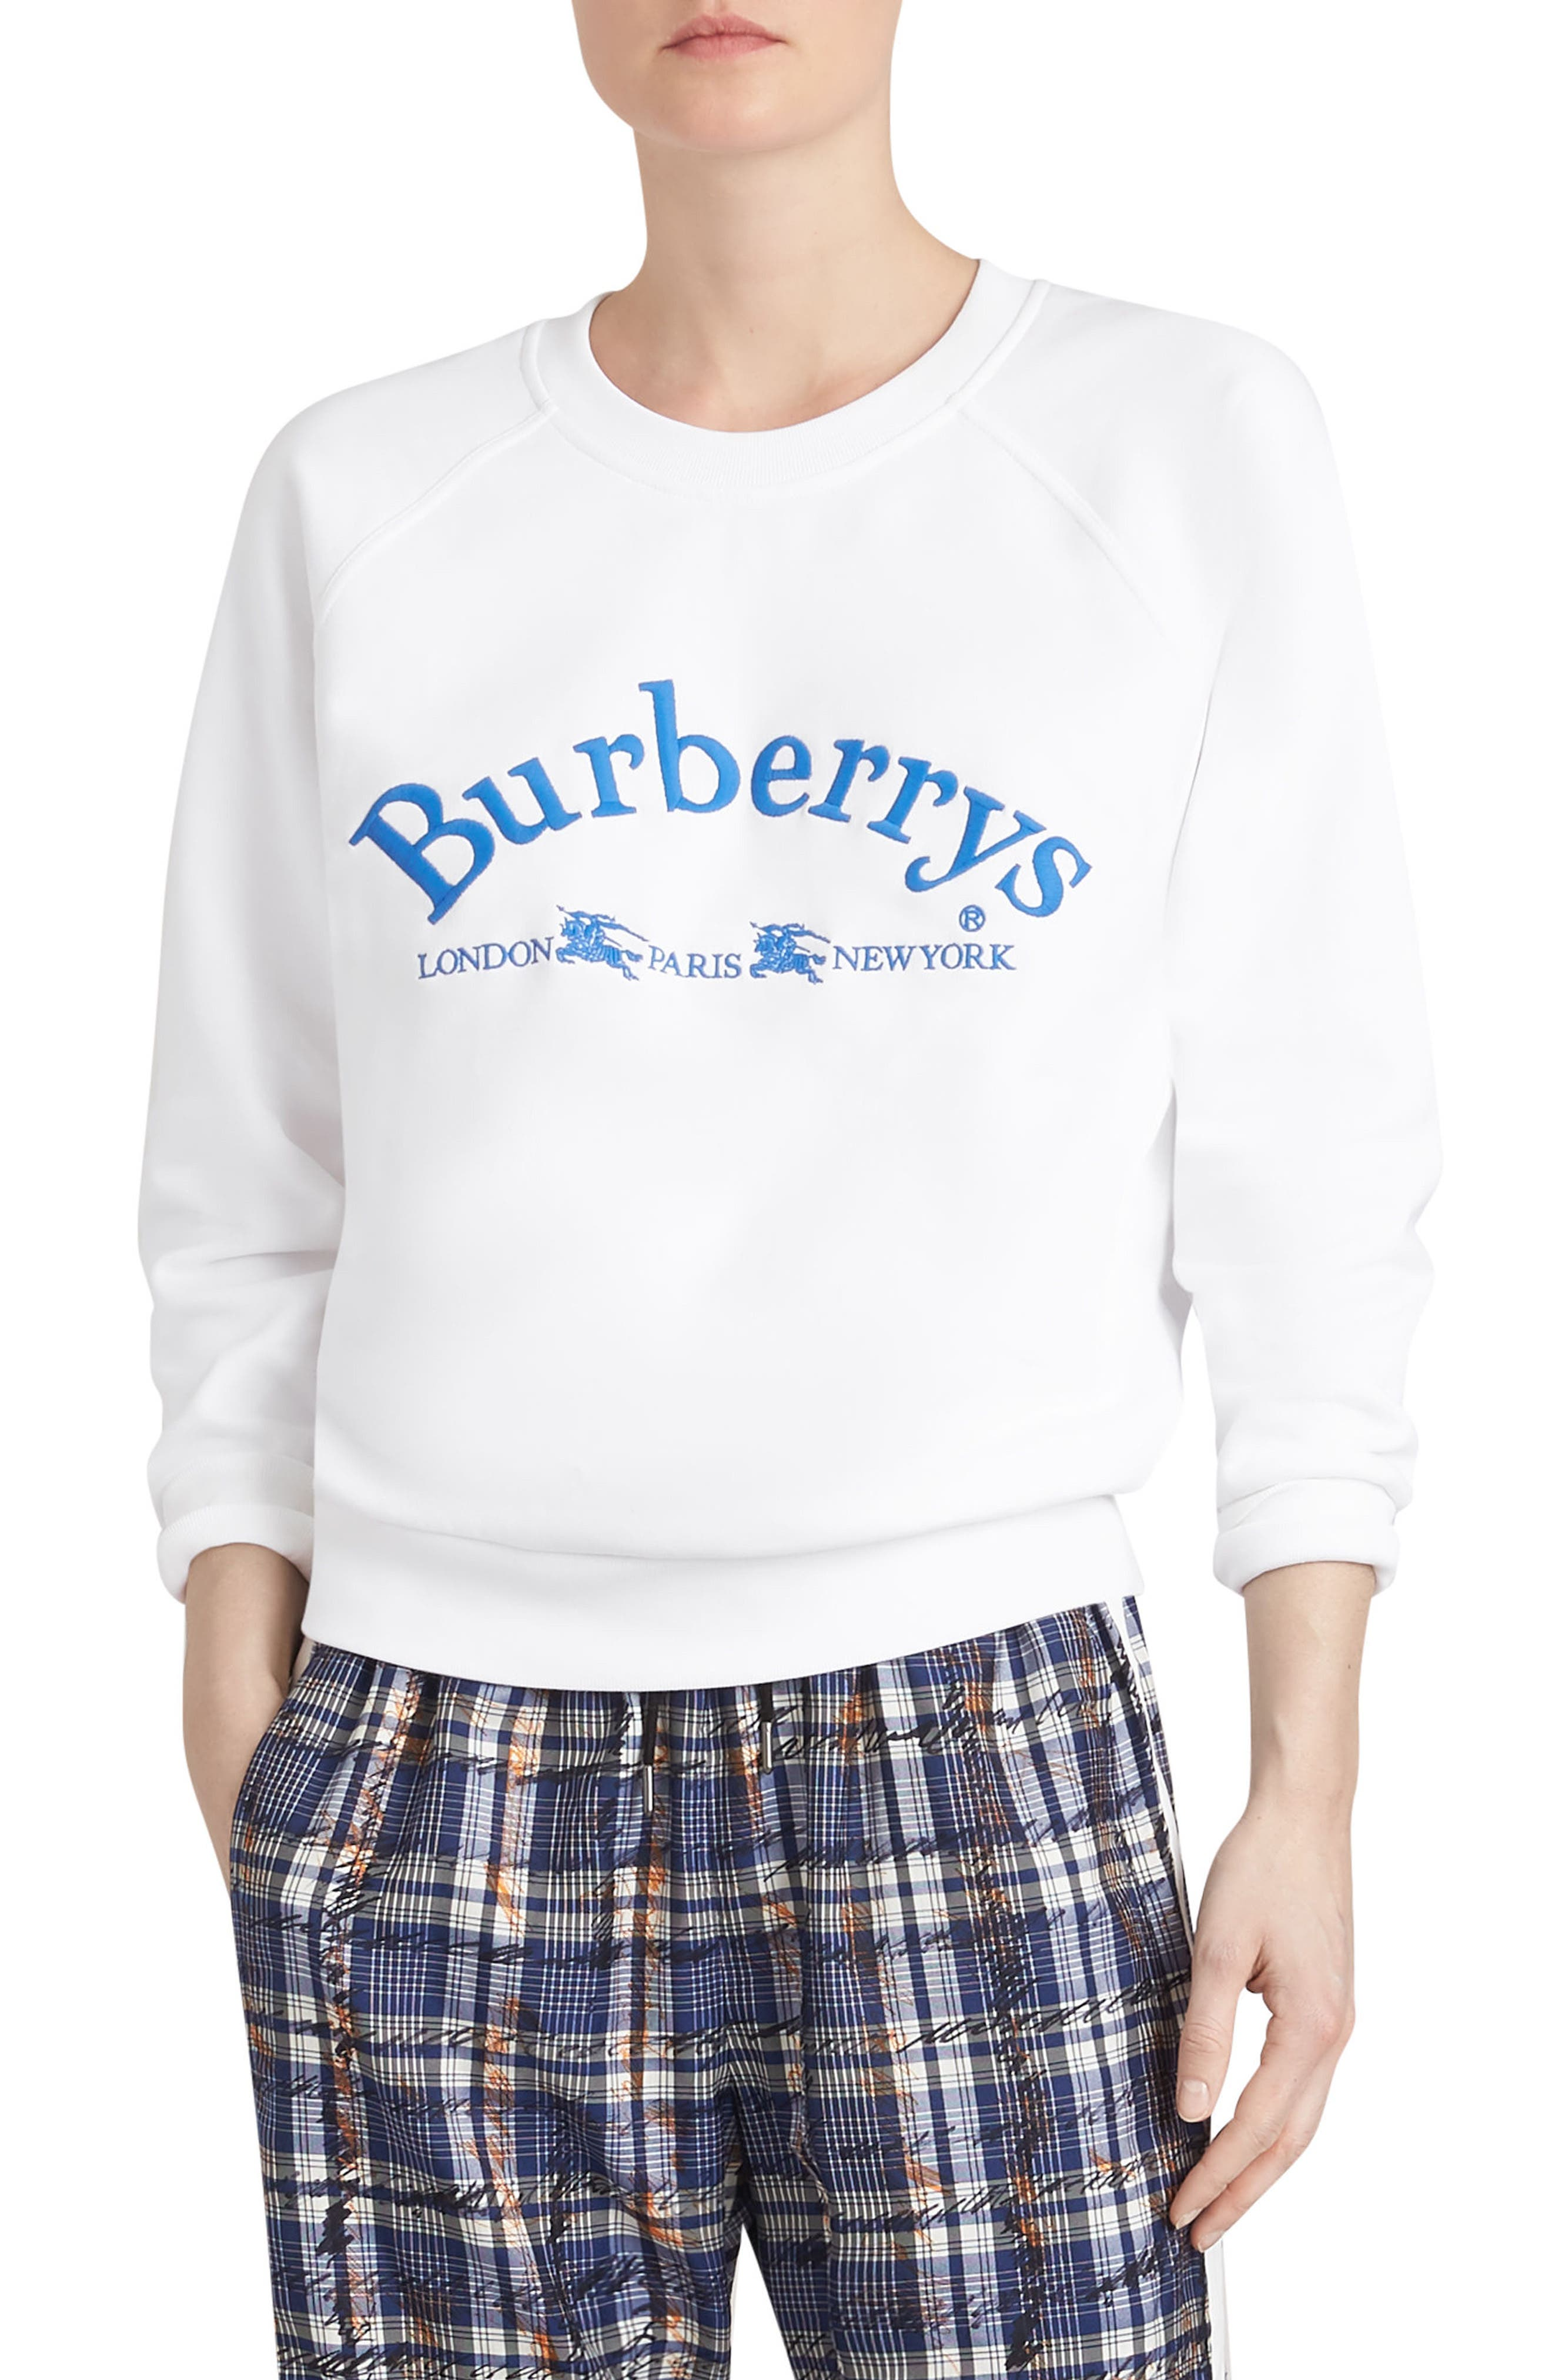 Battarni Embroidered Logo Sweatshirt,                             Main thumbnail 1, color,                             WHITE